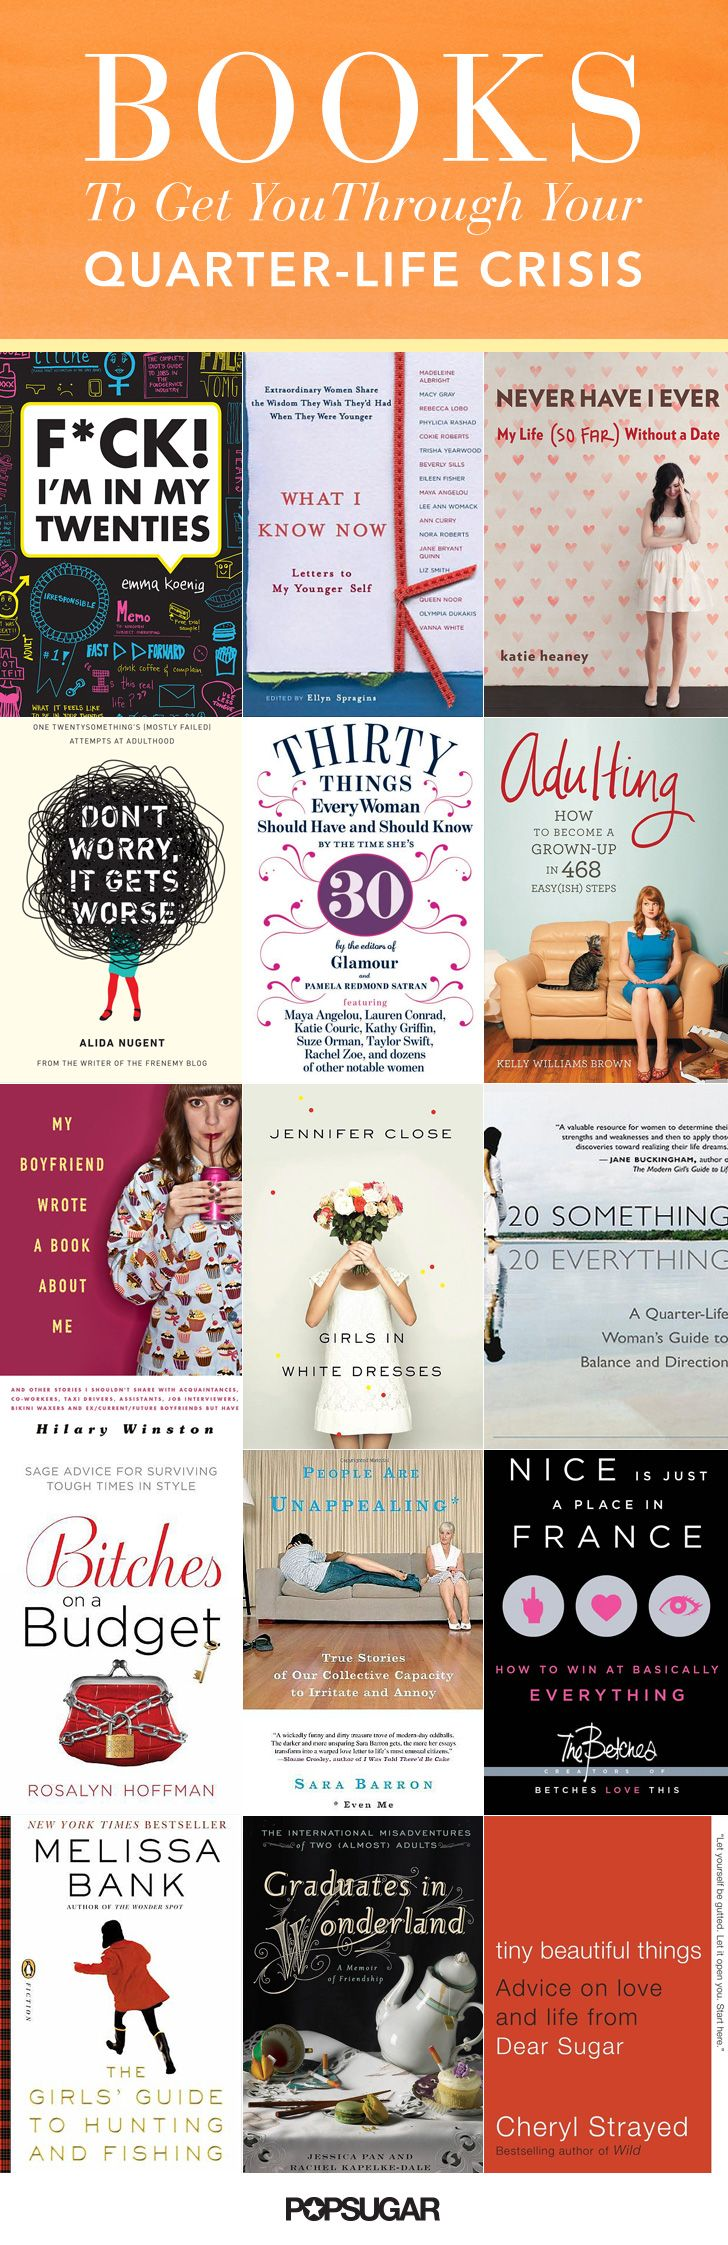 A reading guide for surviving your quarter-life crisis.